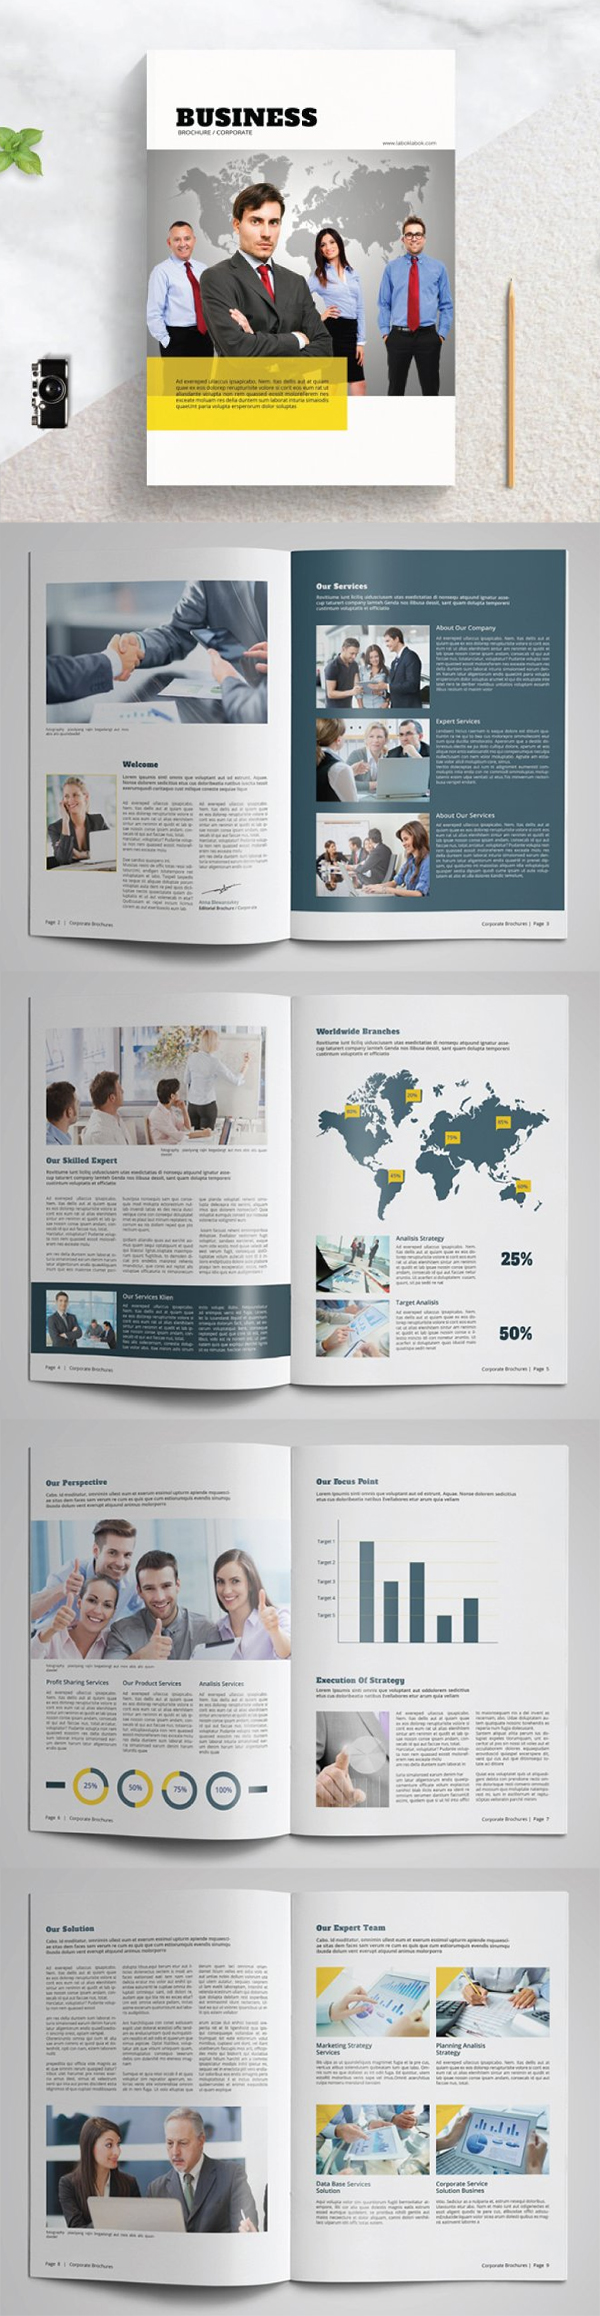 Business Brochure / Corporate